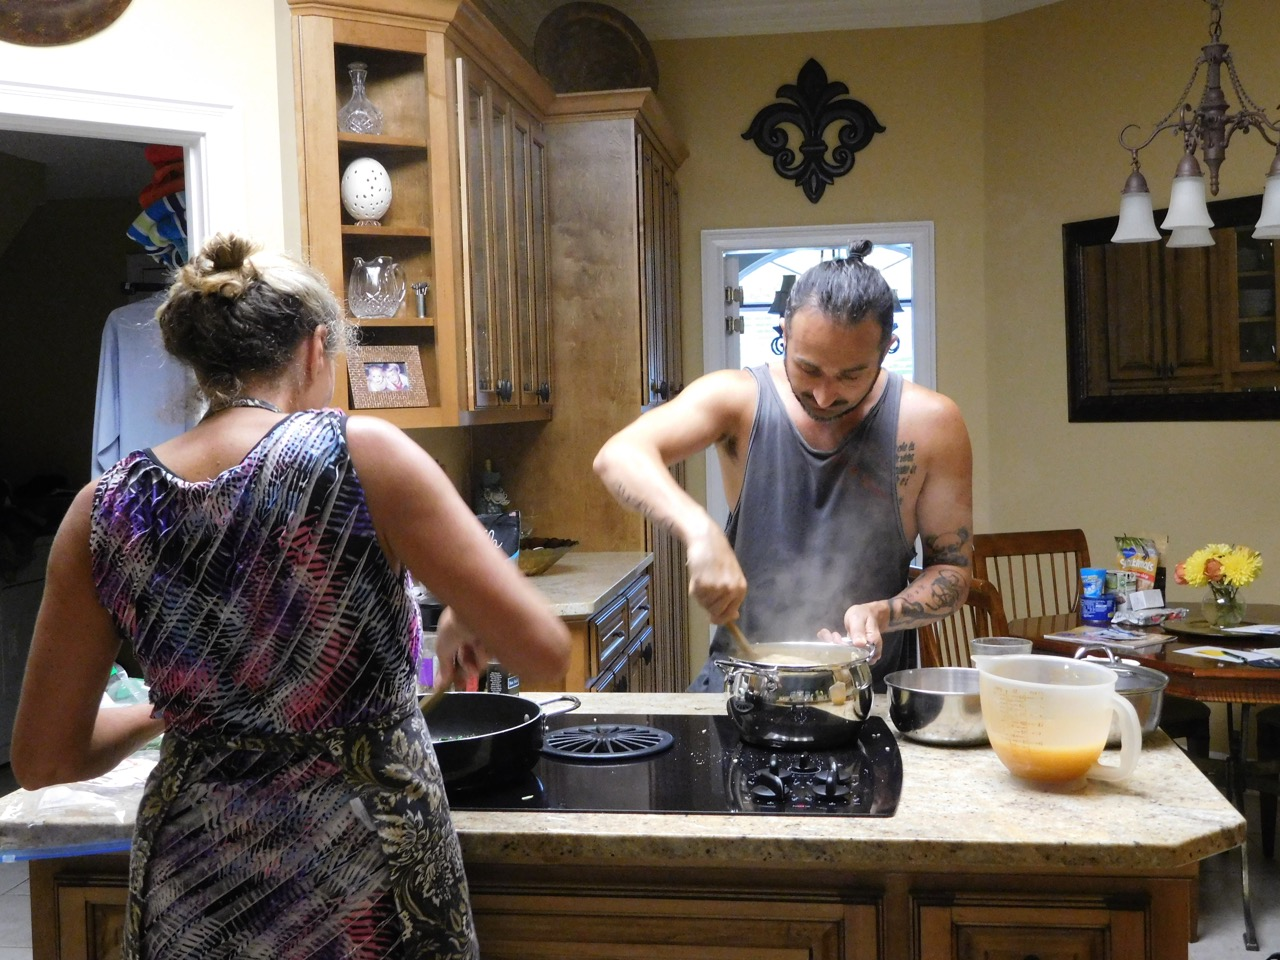 The cousins cooking together!